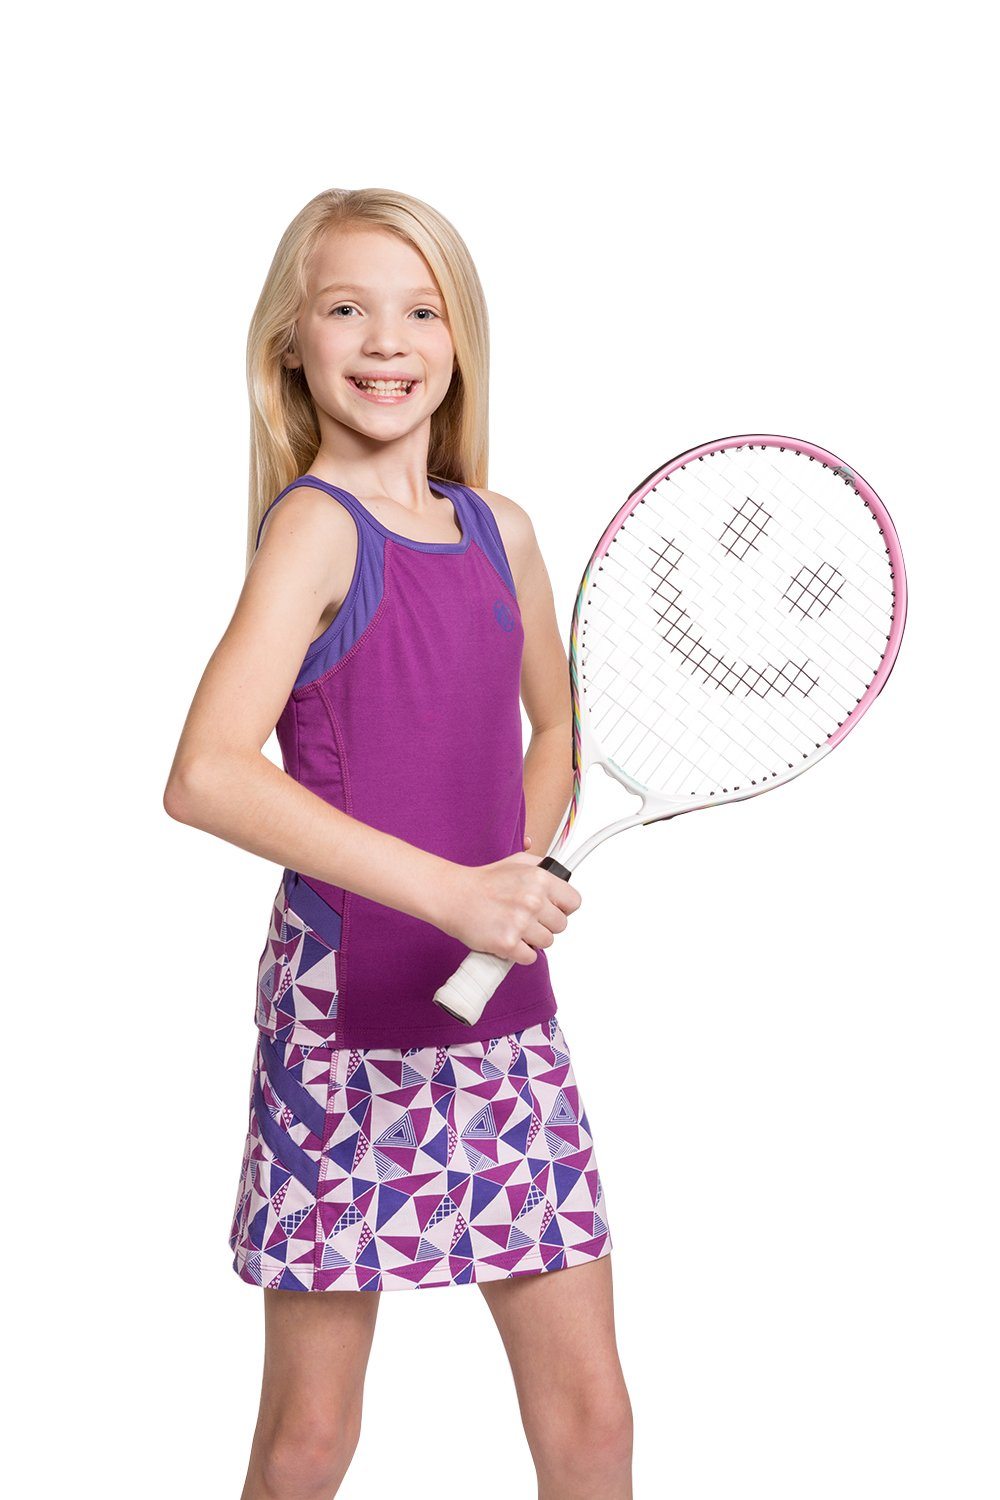 Girls Tennis & Golf Tank and Skirt Set with Built in Shorts Sparkaling Grape/Purple Size XL